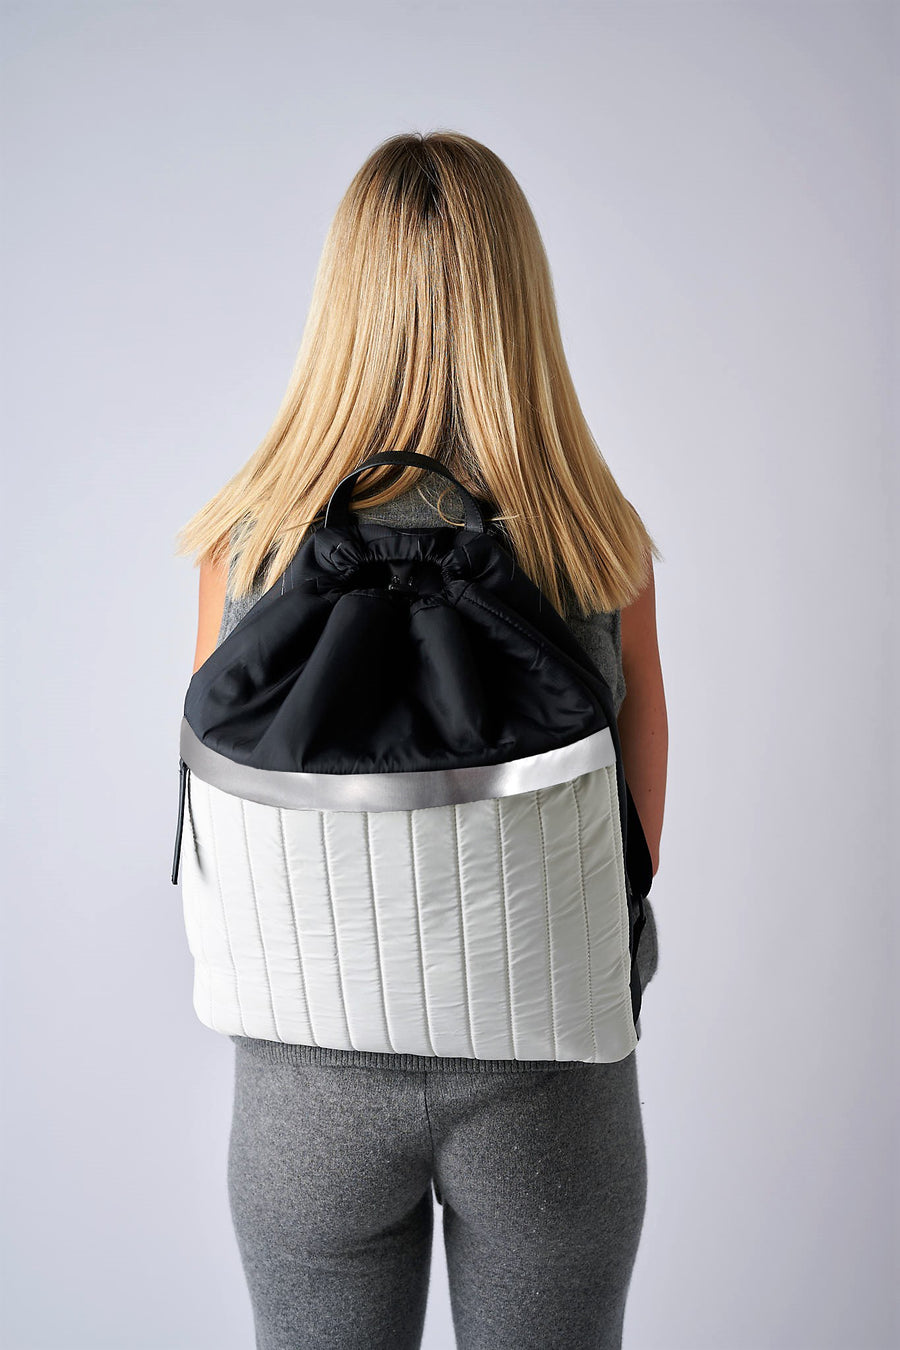 person wearing black and white nylon backpack with shiny silver detail